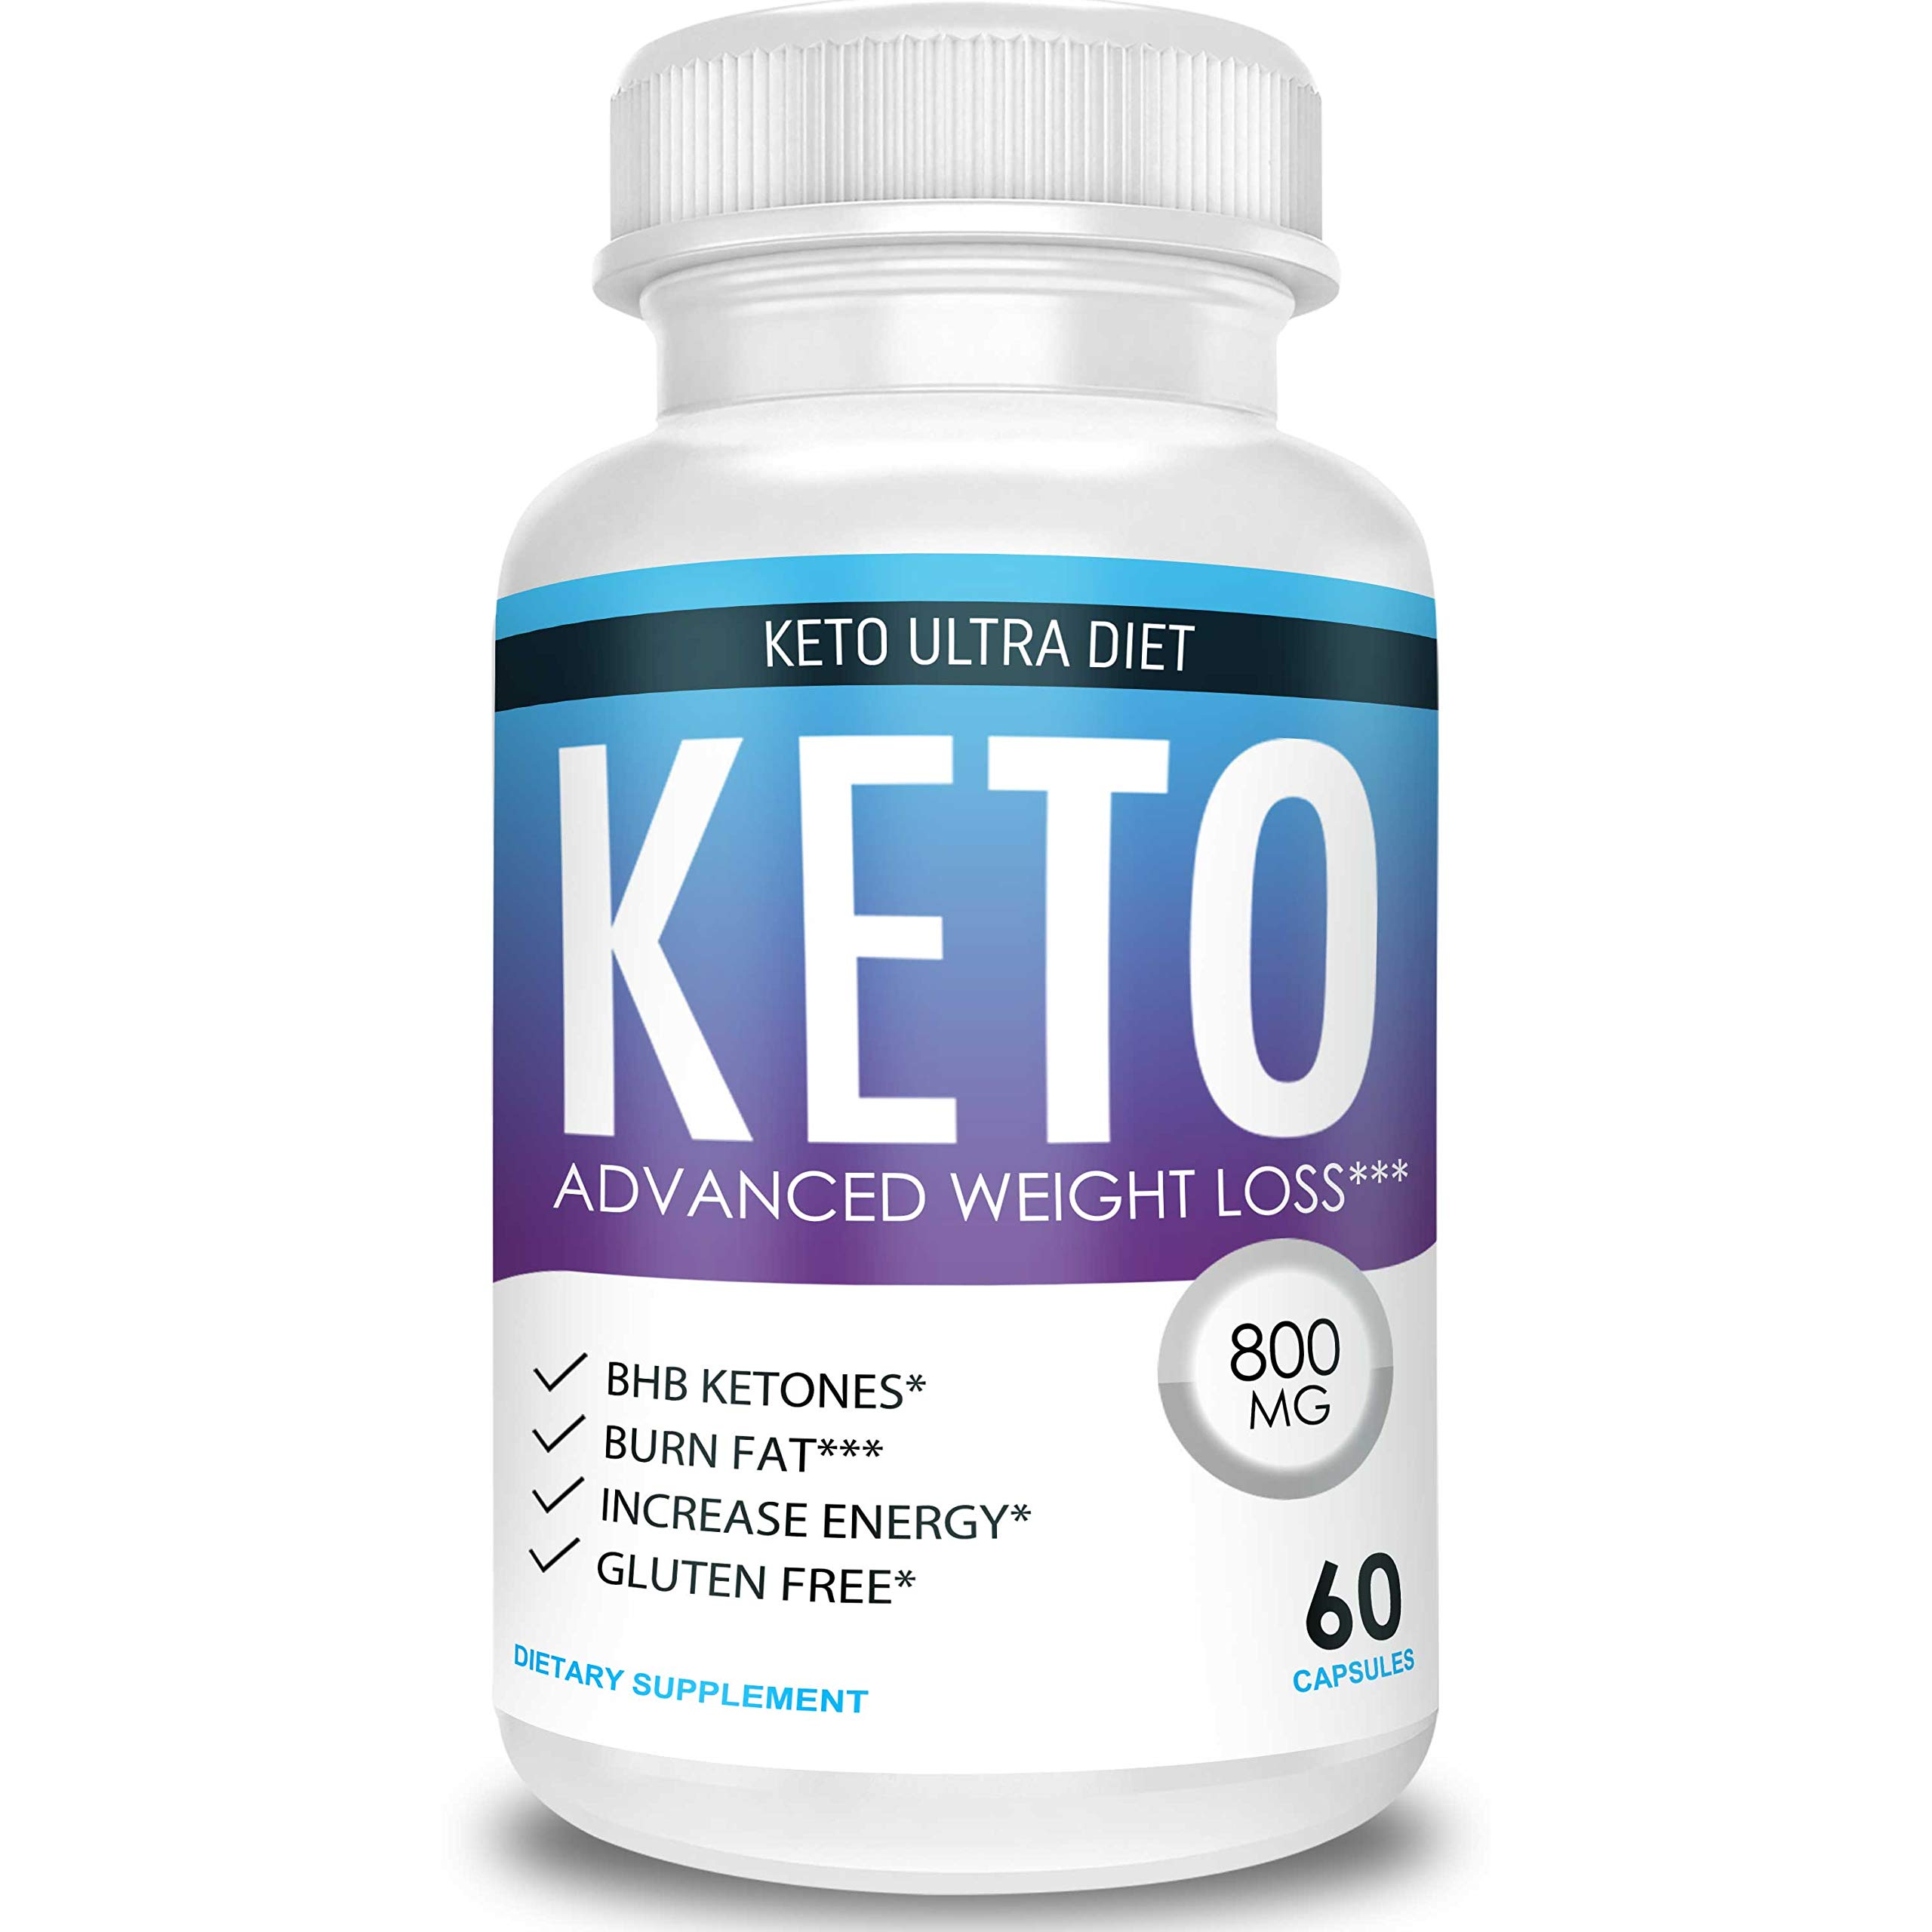 Amazon.com: Keto Ultra Diet - Advanced Weight Loss